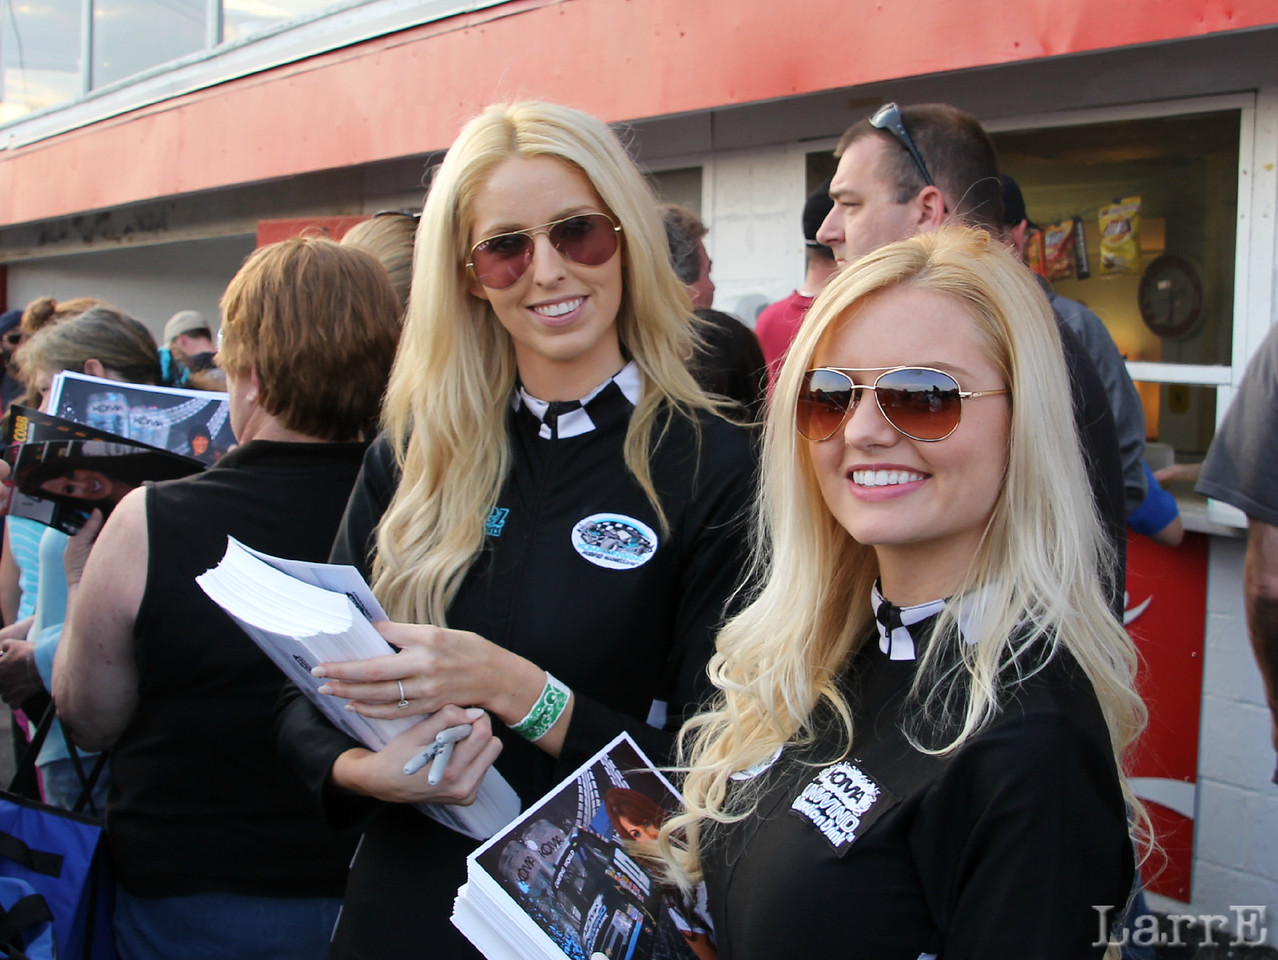 the Koma girls were handing out posters for the autograph session.